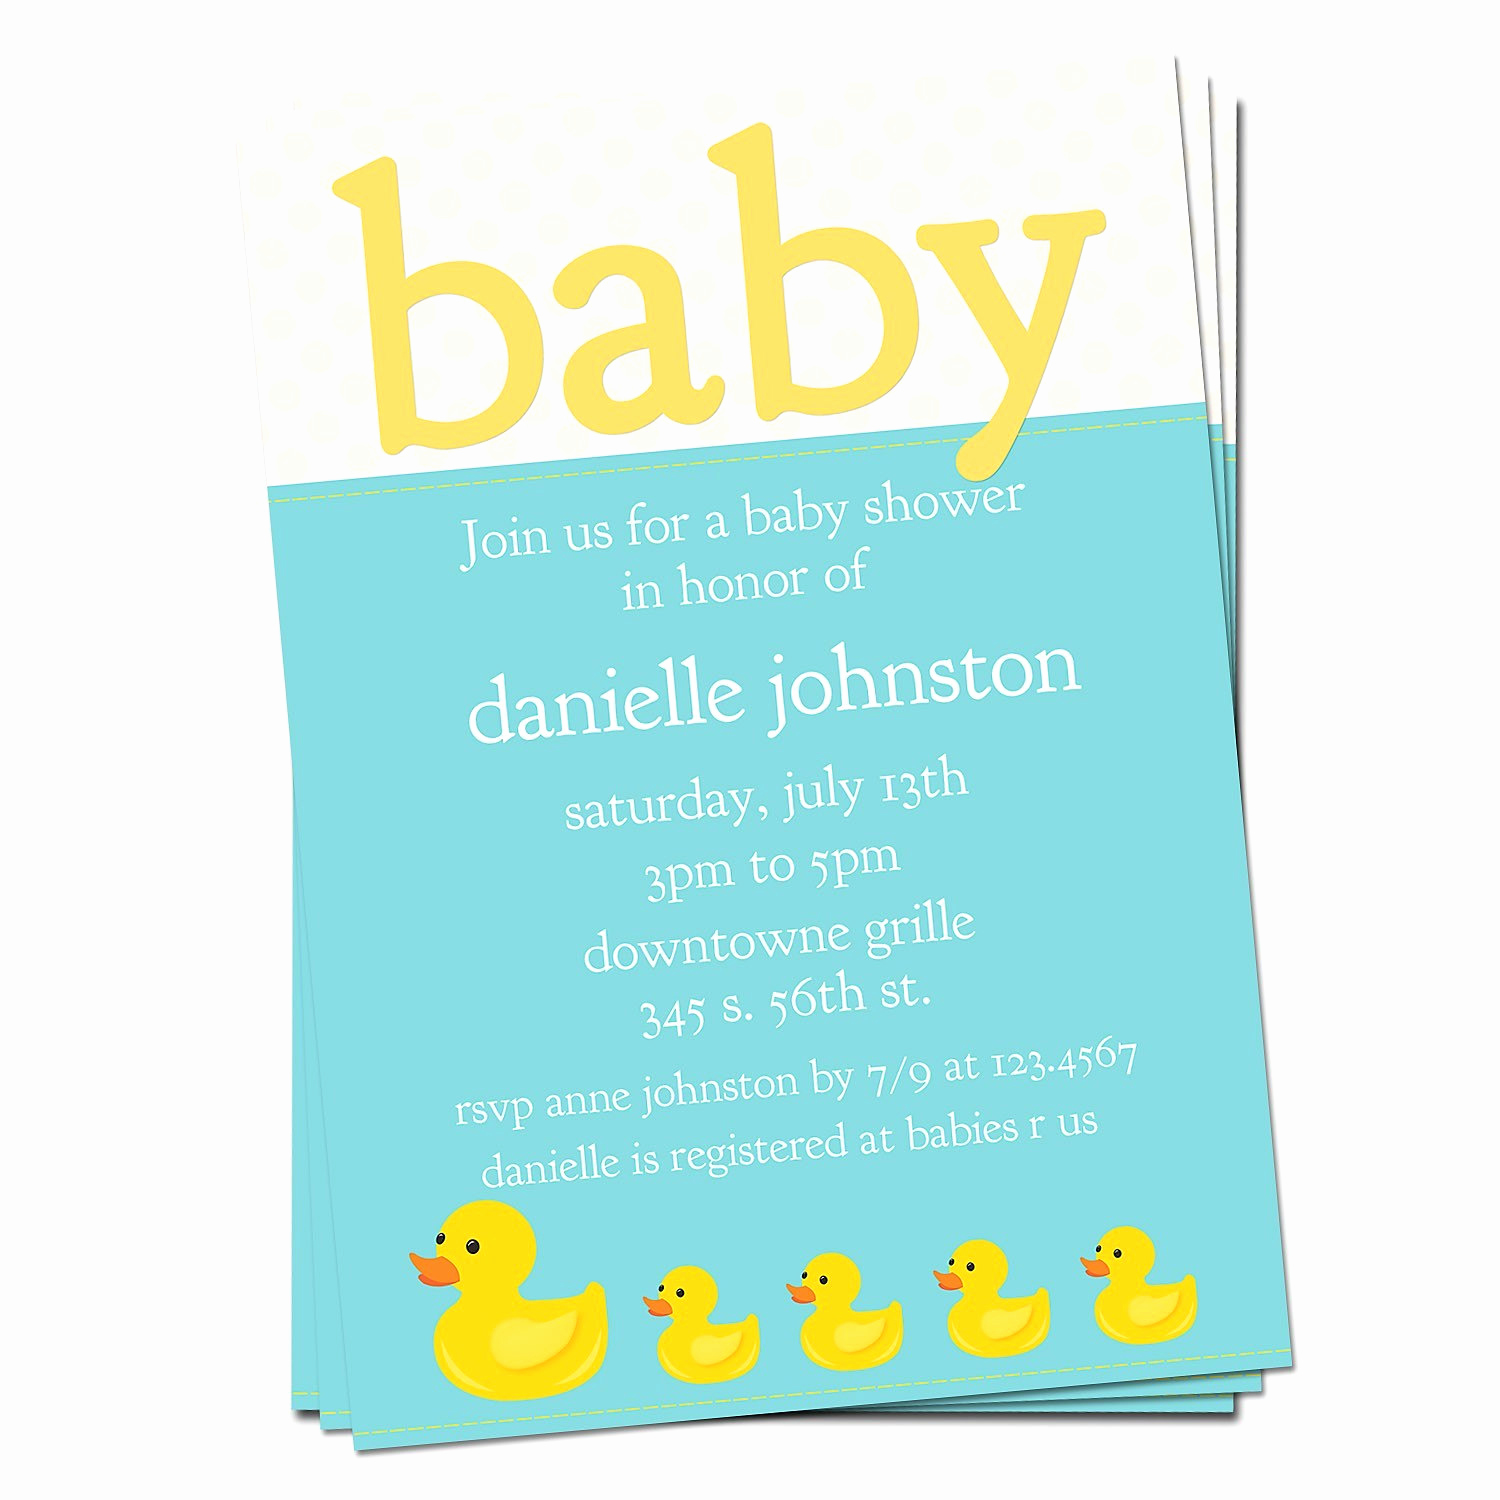 Rubber Ducky Baby Shower Invitation Beautiful Rubber Ducky Baby Shower Invitation